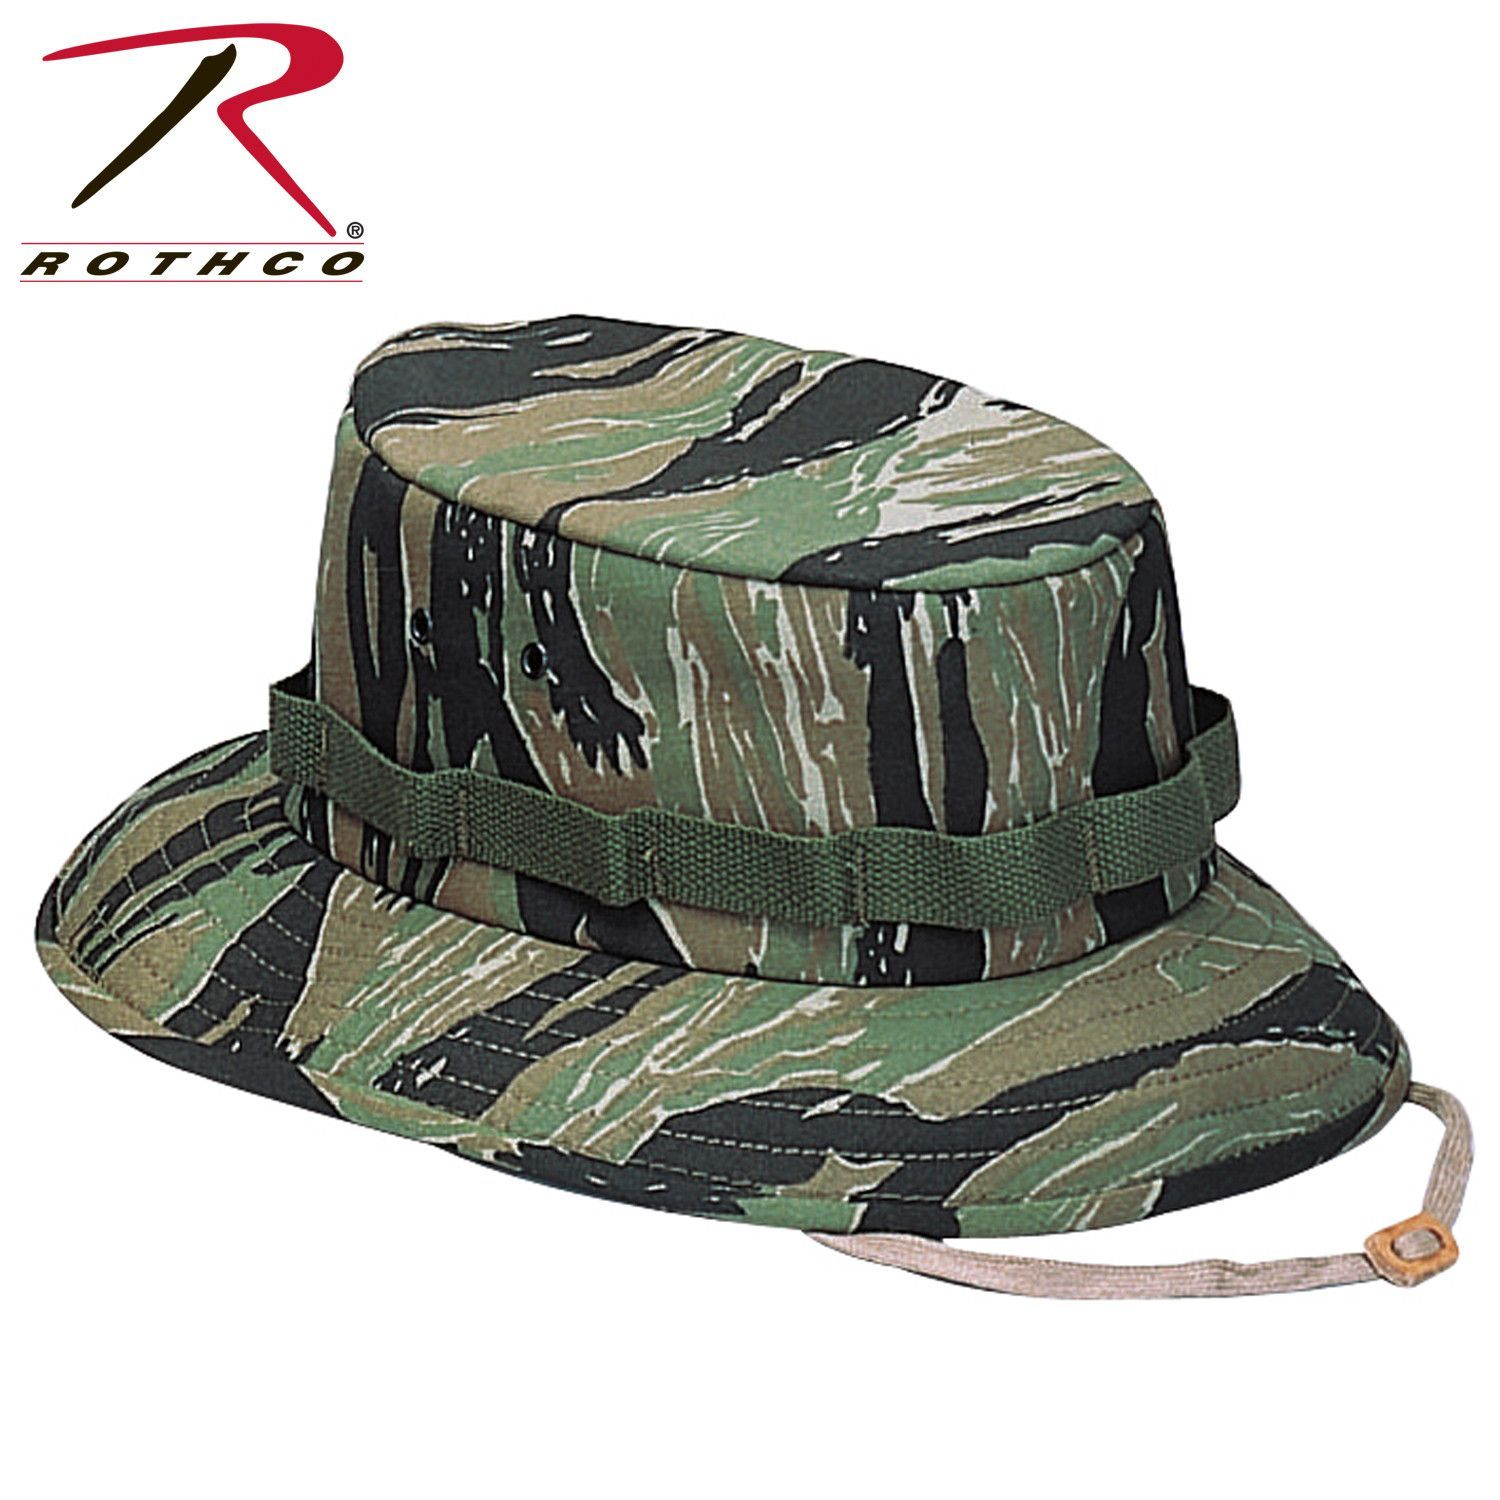 38ede64483fa4 Rothco Camo Jungle Hat